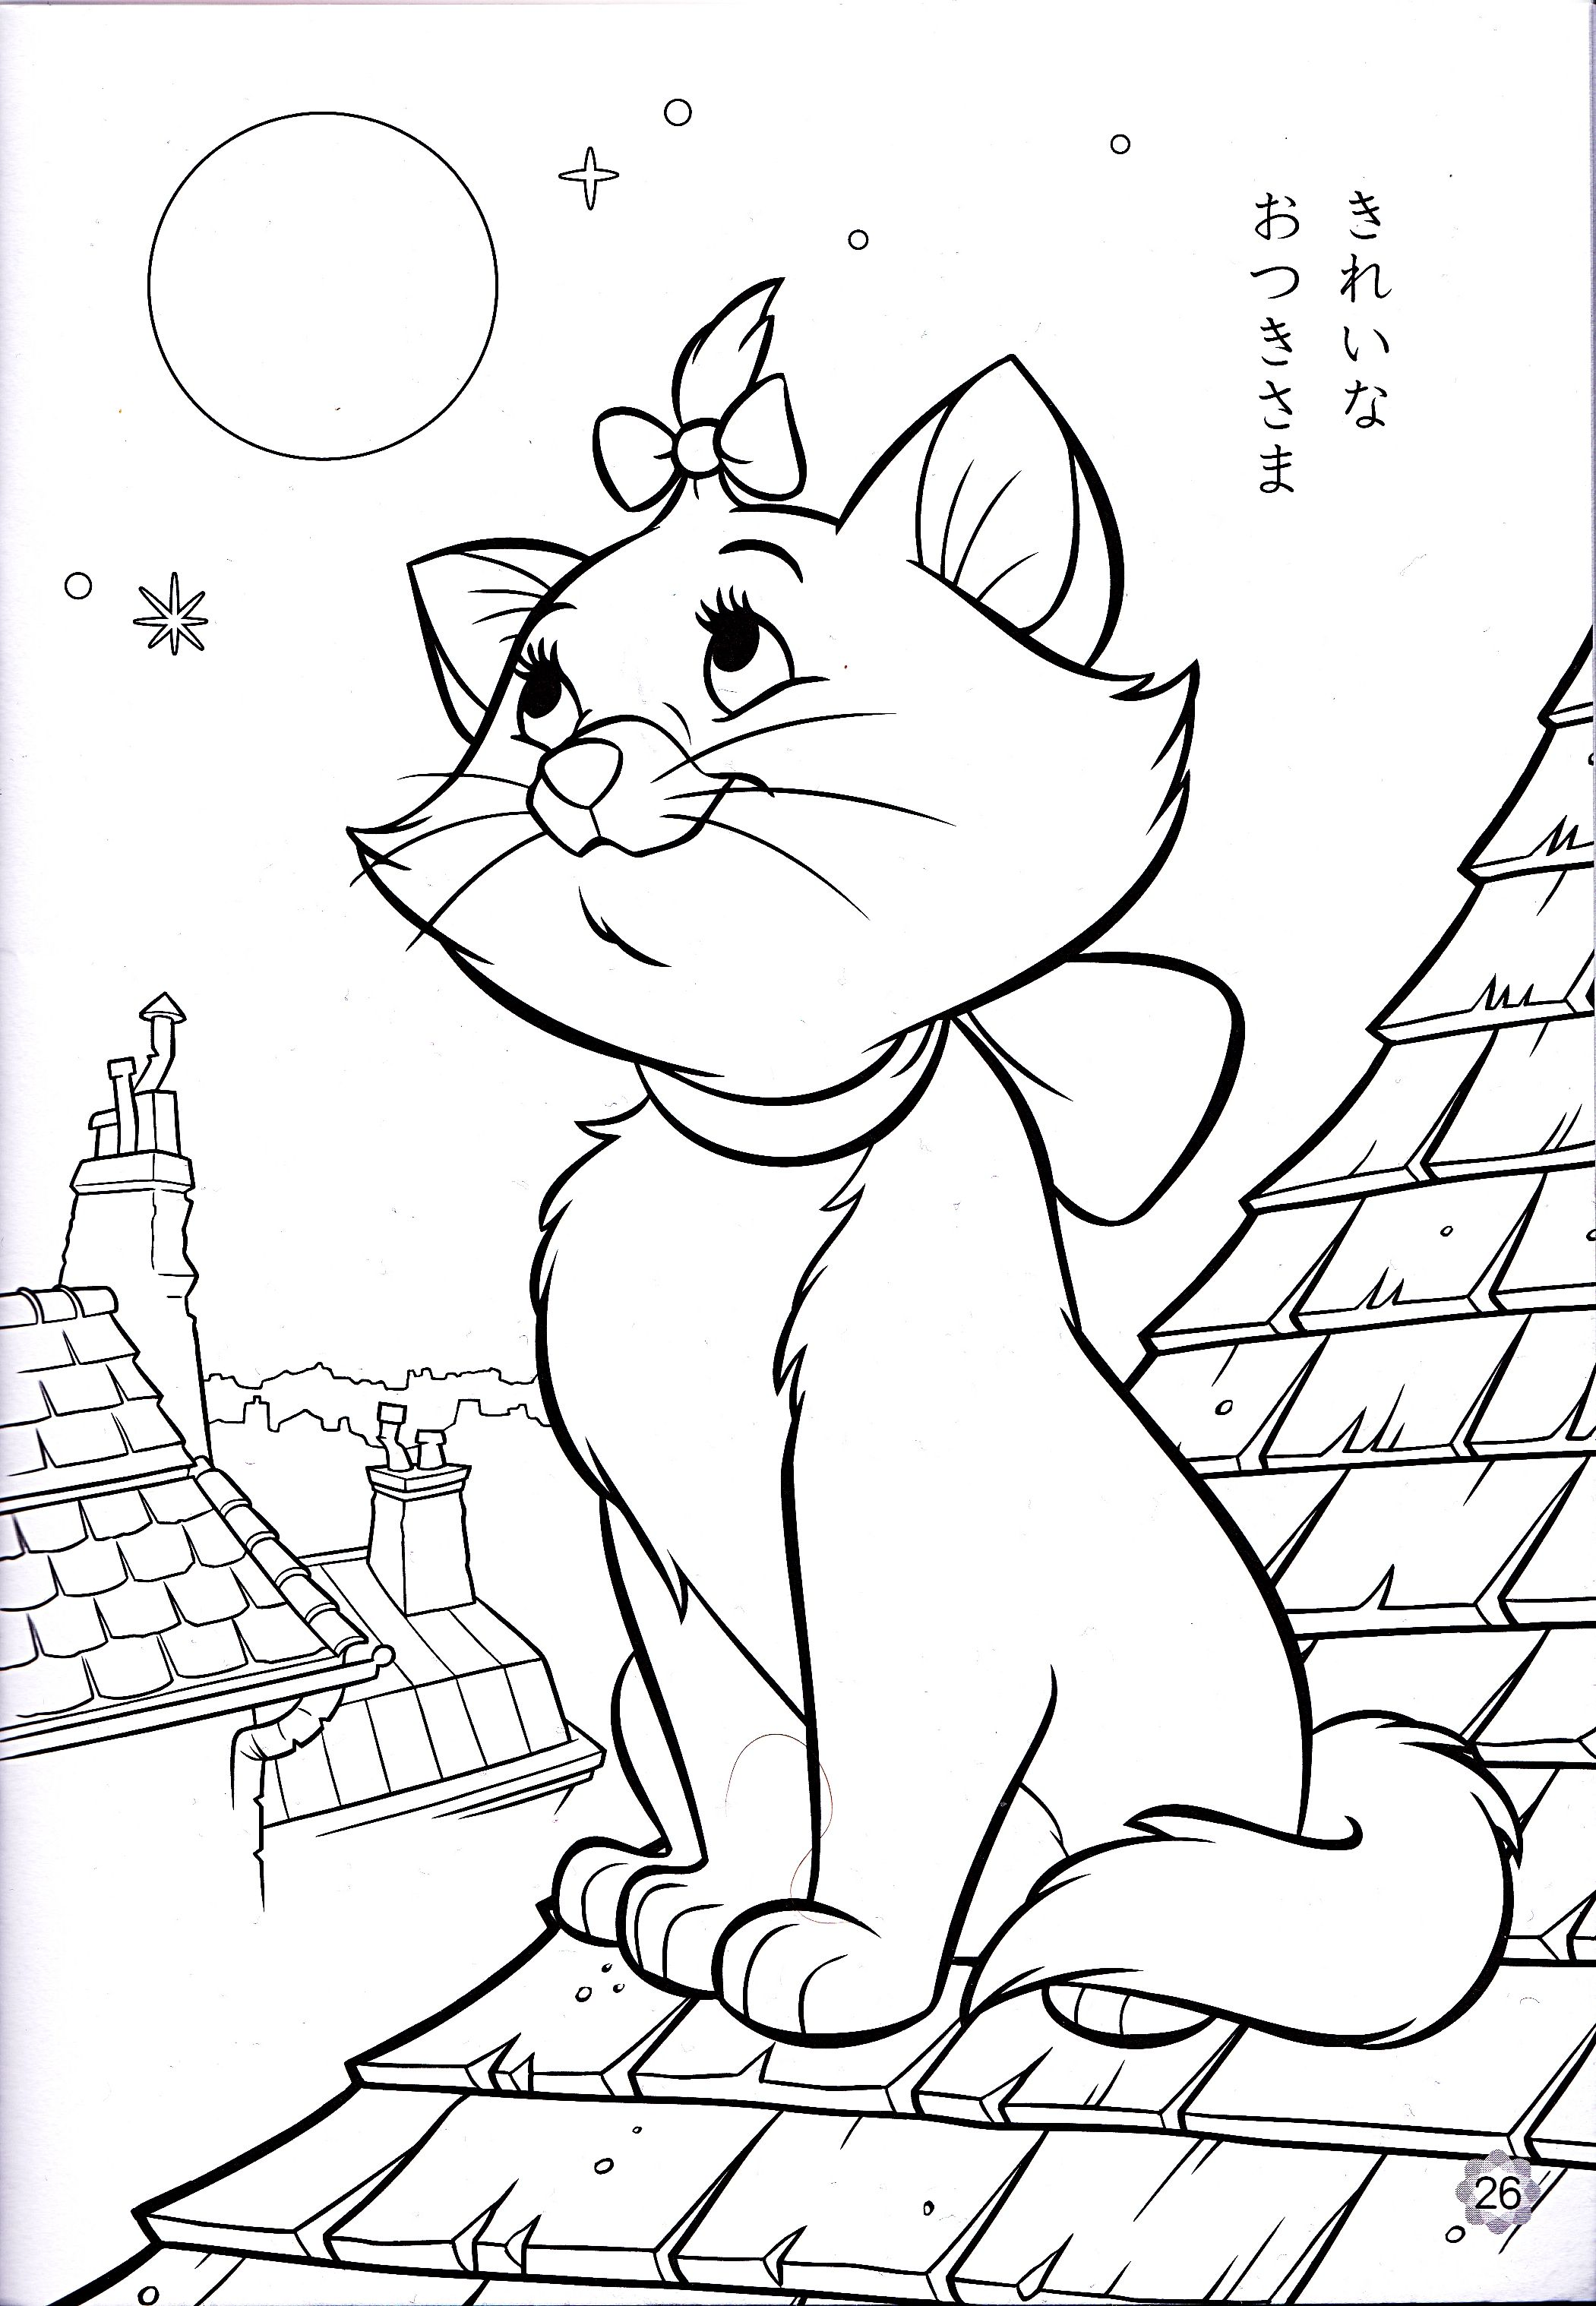 walt disney coloring pages - marie - walt disney characters photo ... - Character Coloring Pages Print